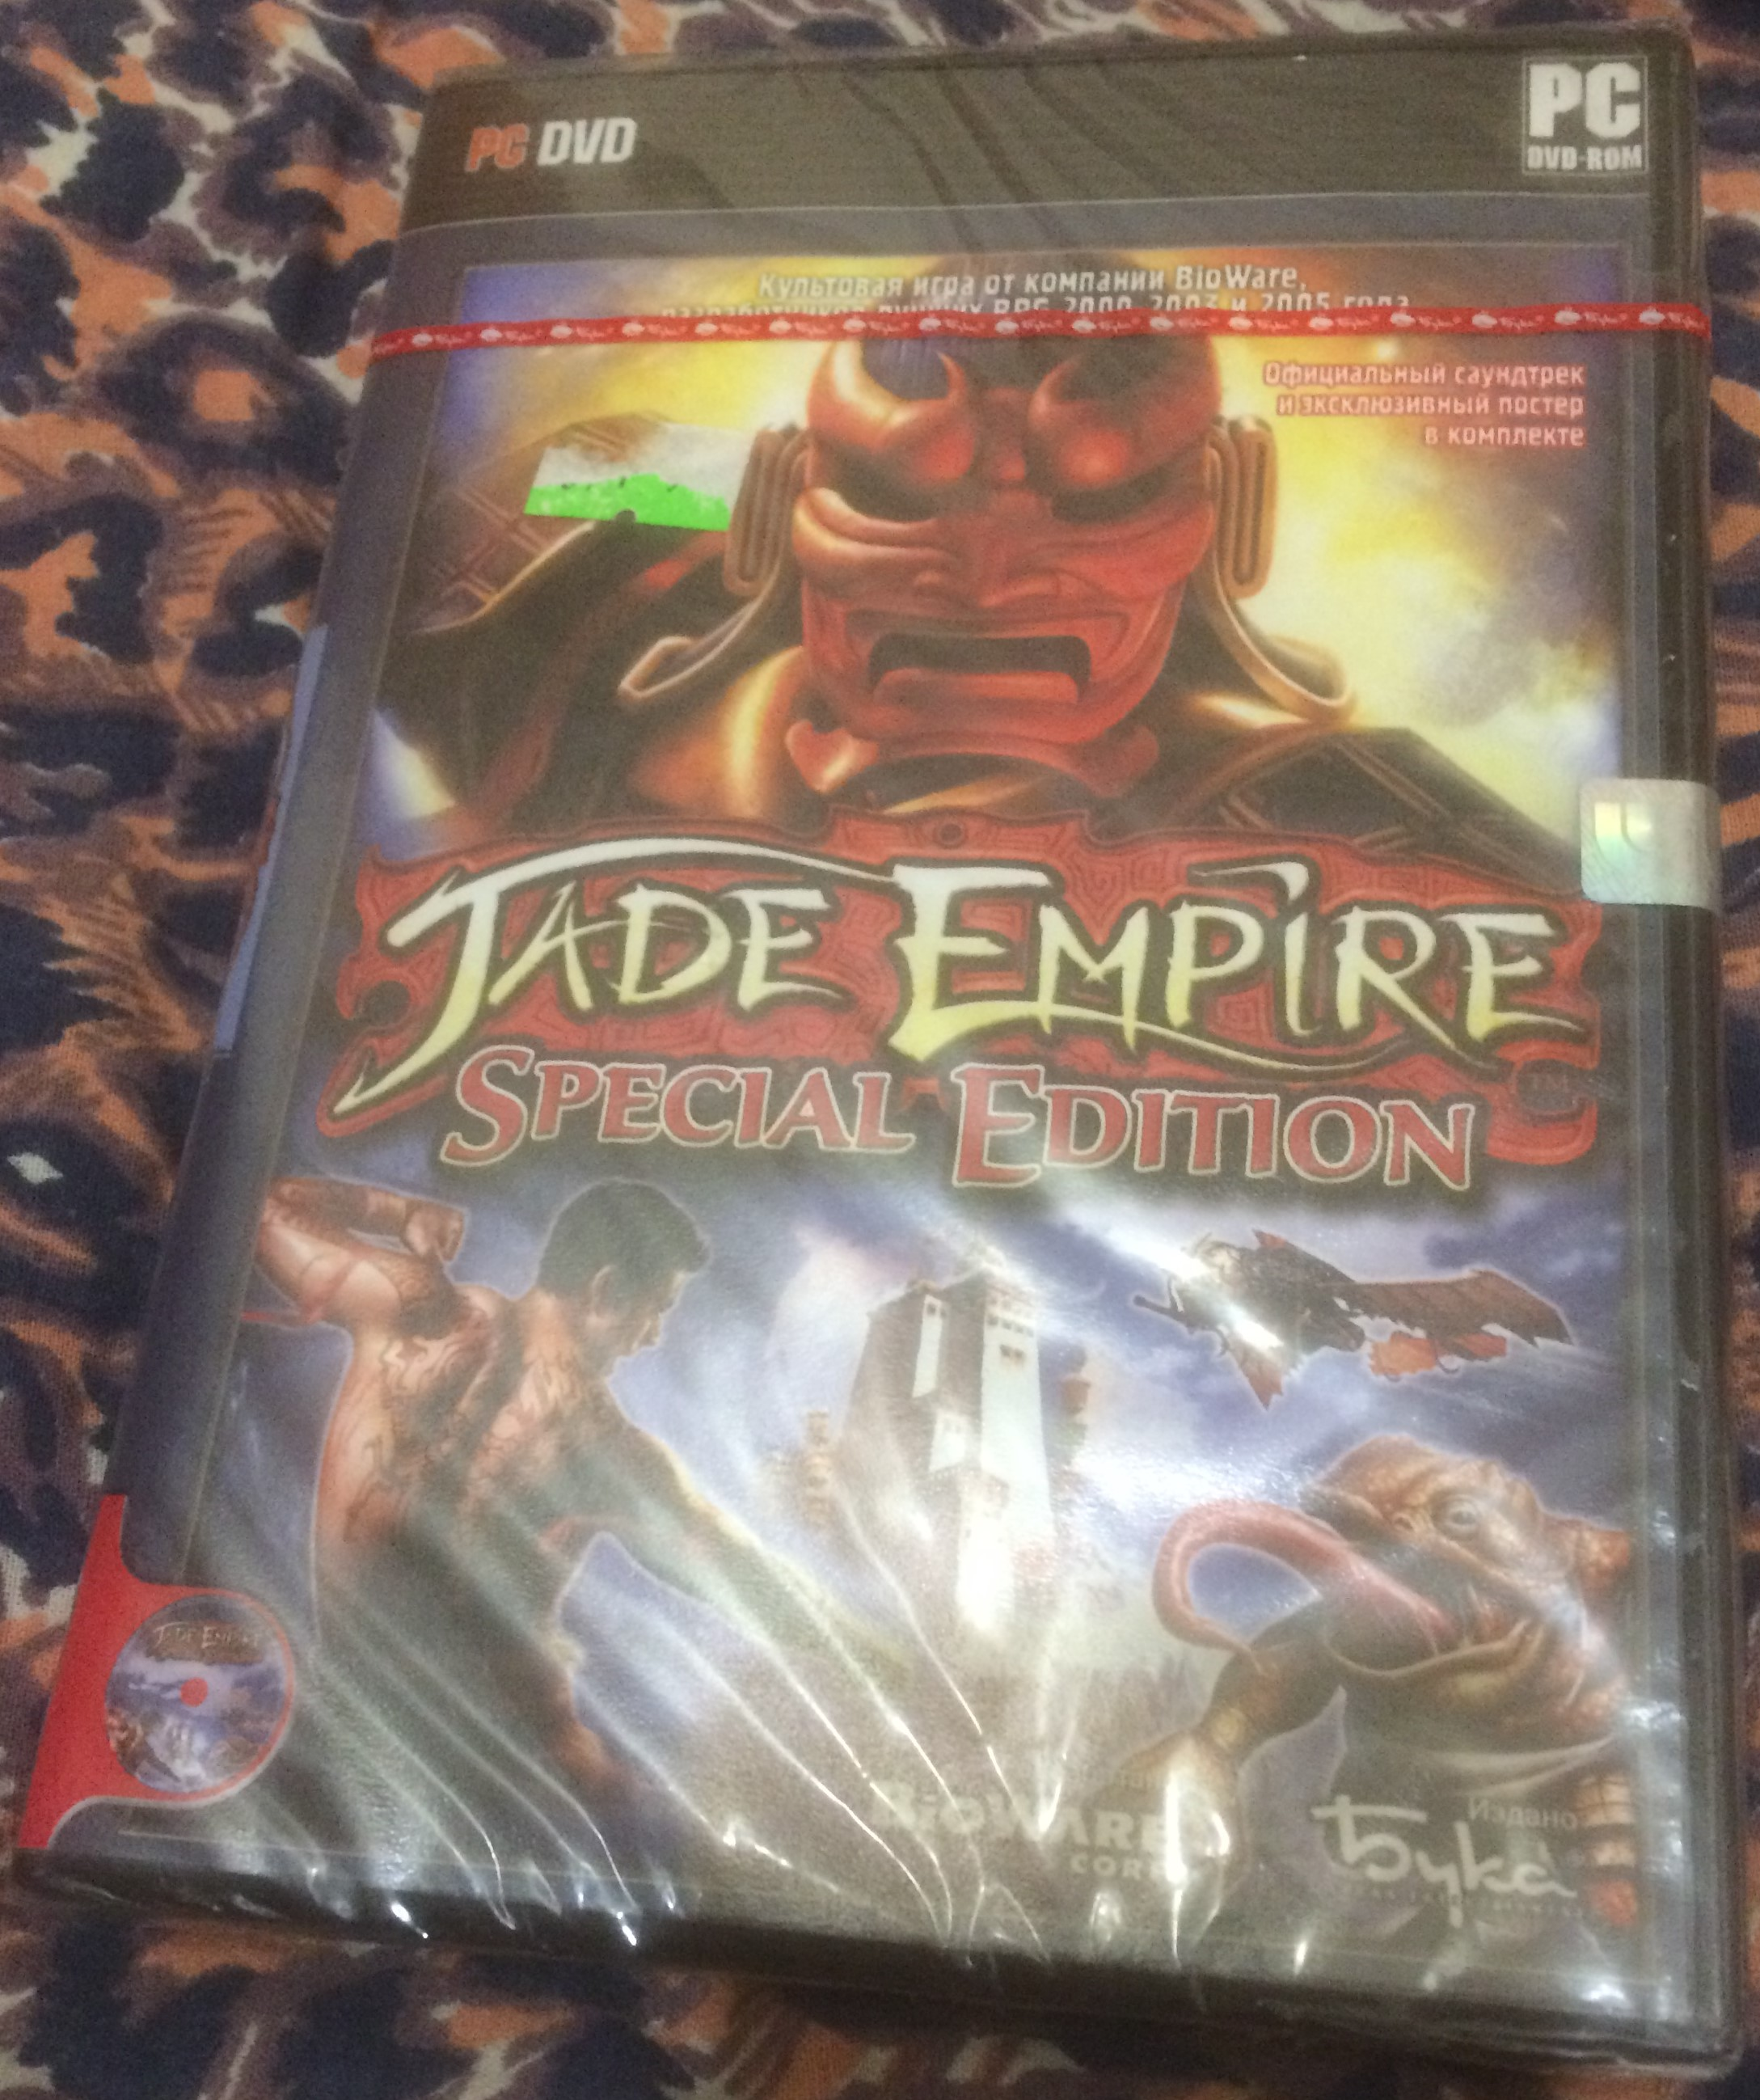 Steam Community :: Jade Empire: Special Edition